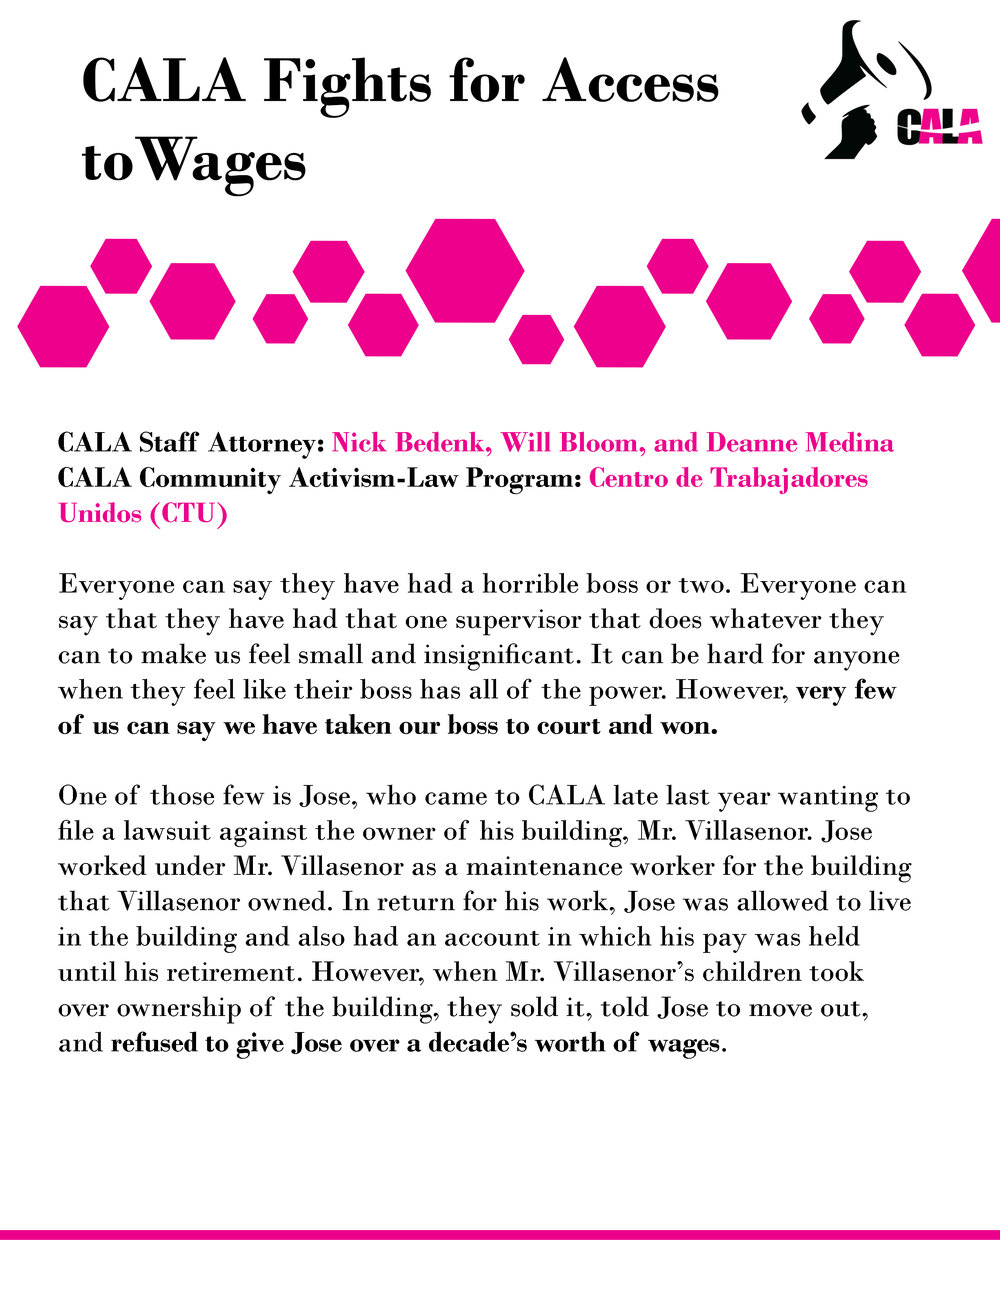 CALA fights for wages pg 2 .jpg